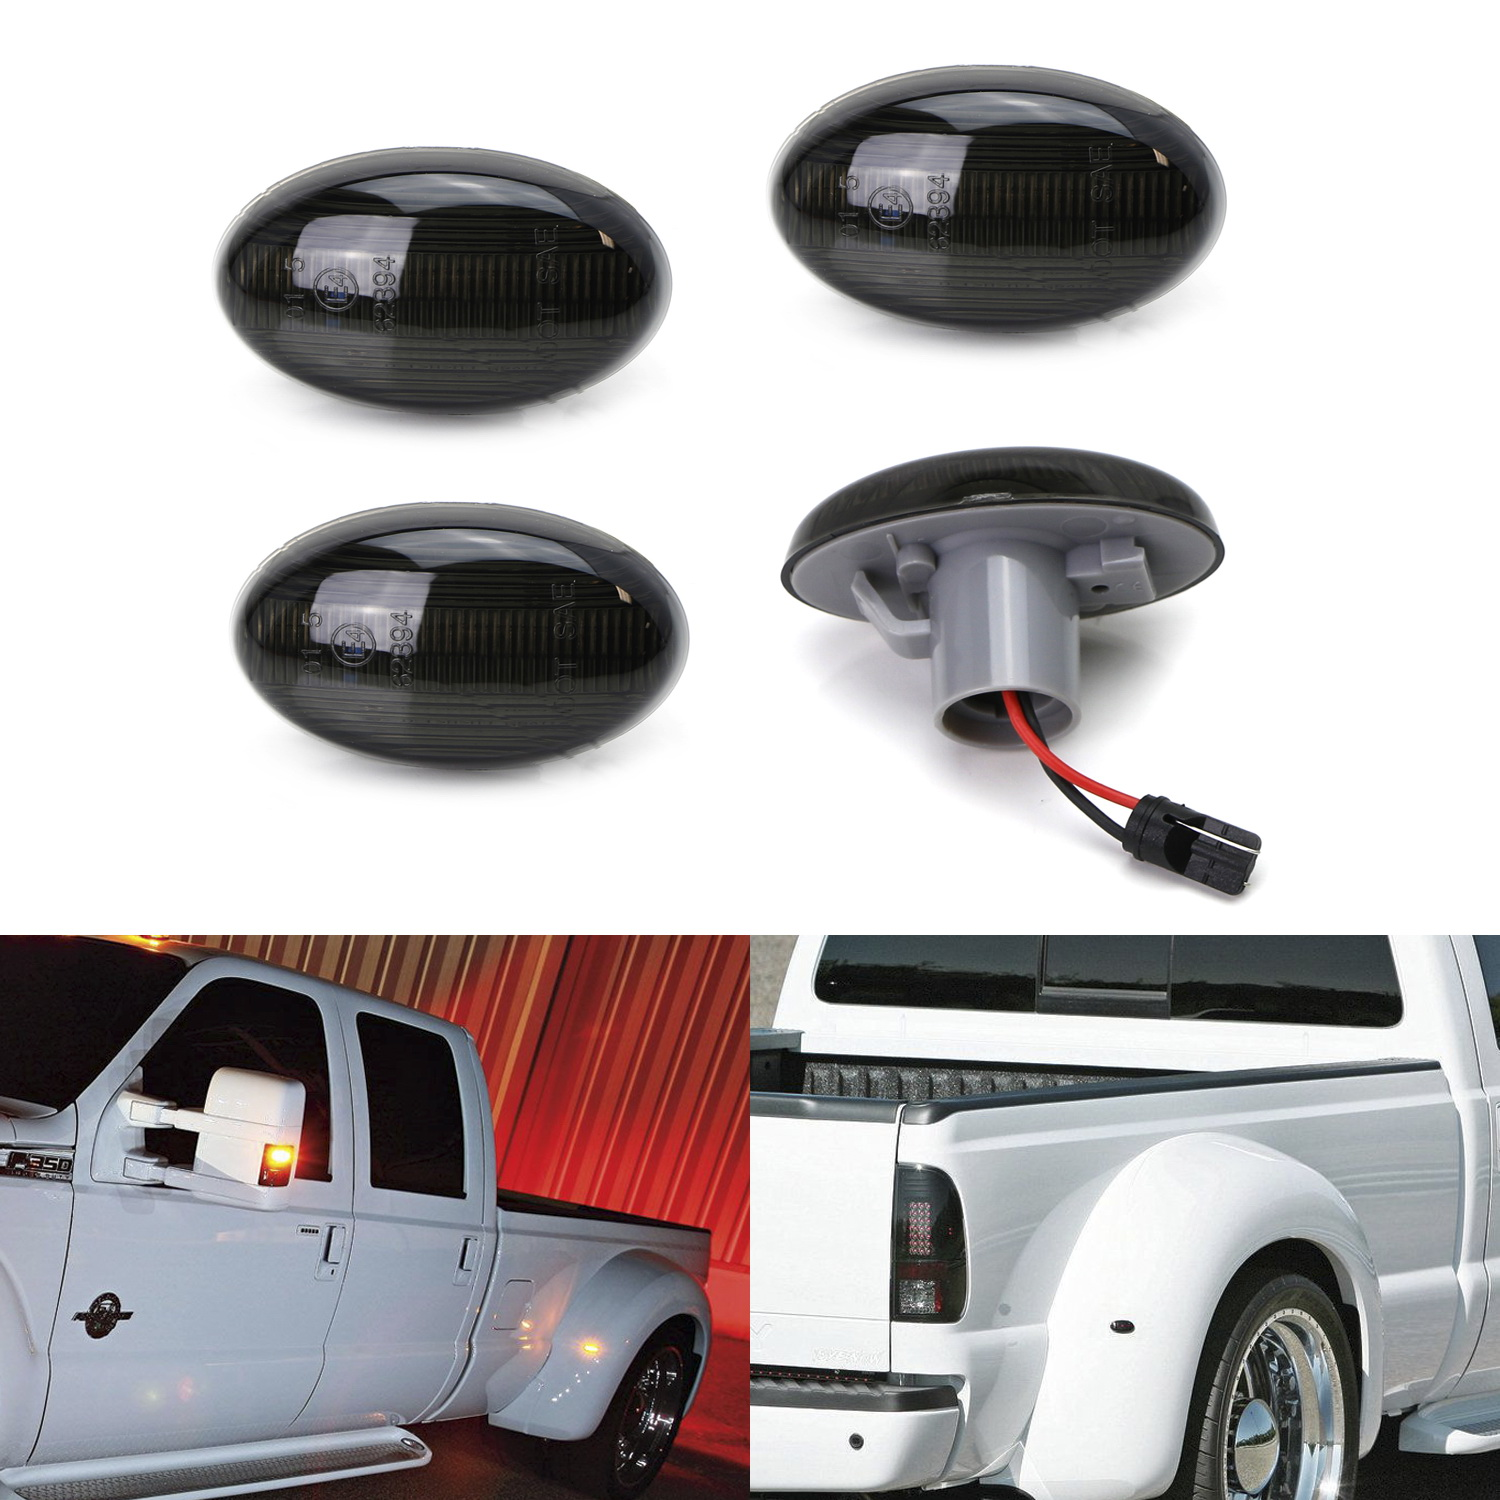 iJDMTOY (4) Smoked Lens Front & Rear LED Fender Side Marker Lights w/ 48-SMD LED Diodes For 1999-2010 Ford F-350 F-450 Super Duty Double Wheel